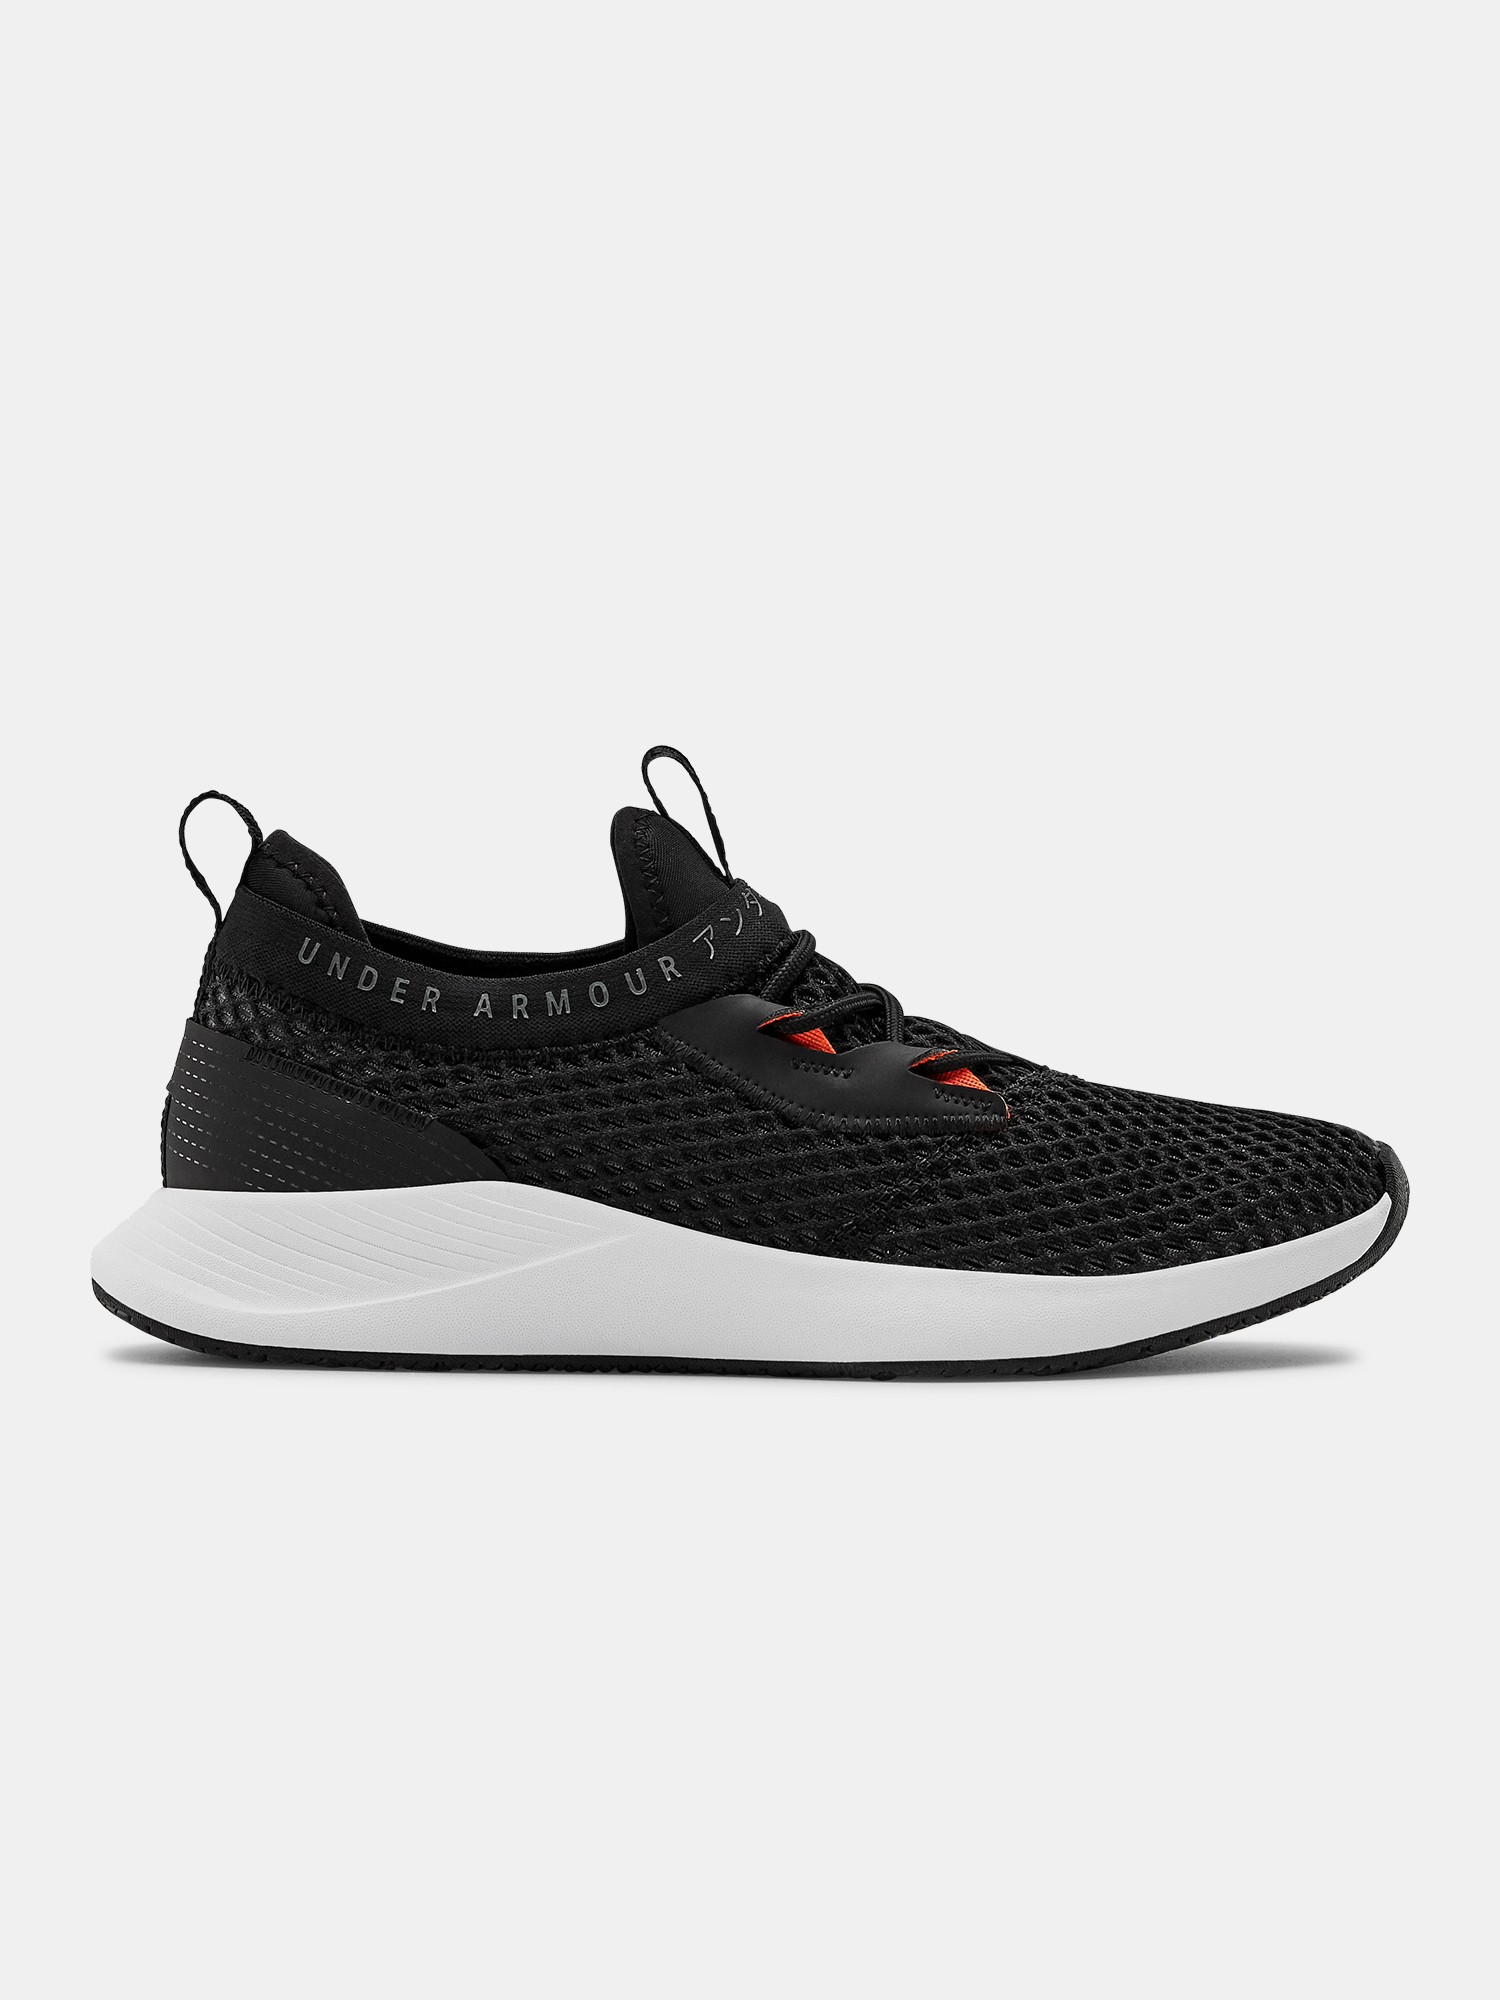 Boty Under Armour W Charged Breathe Smrzd (1)